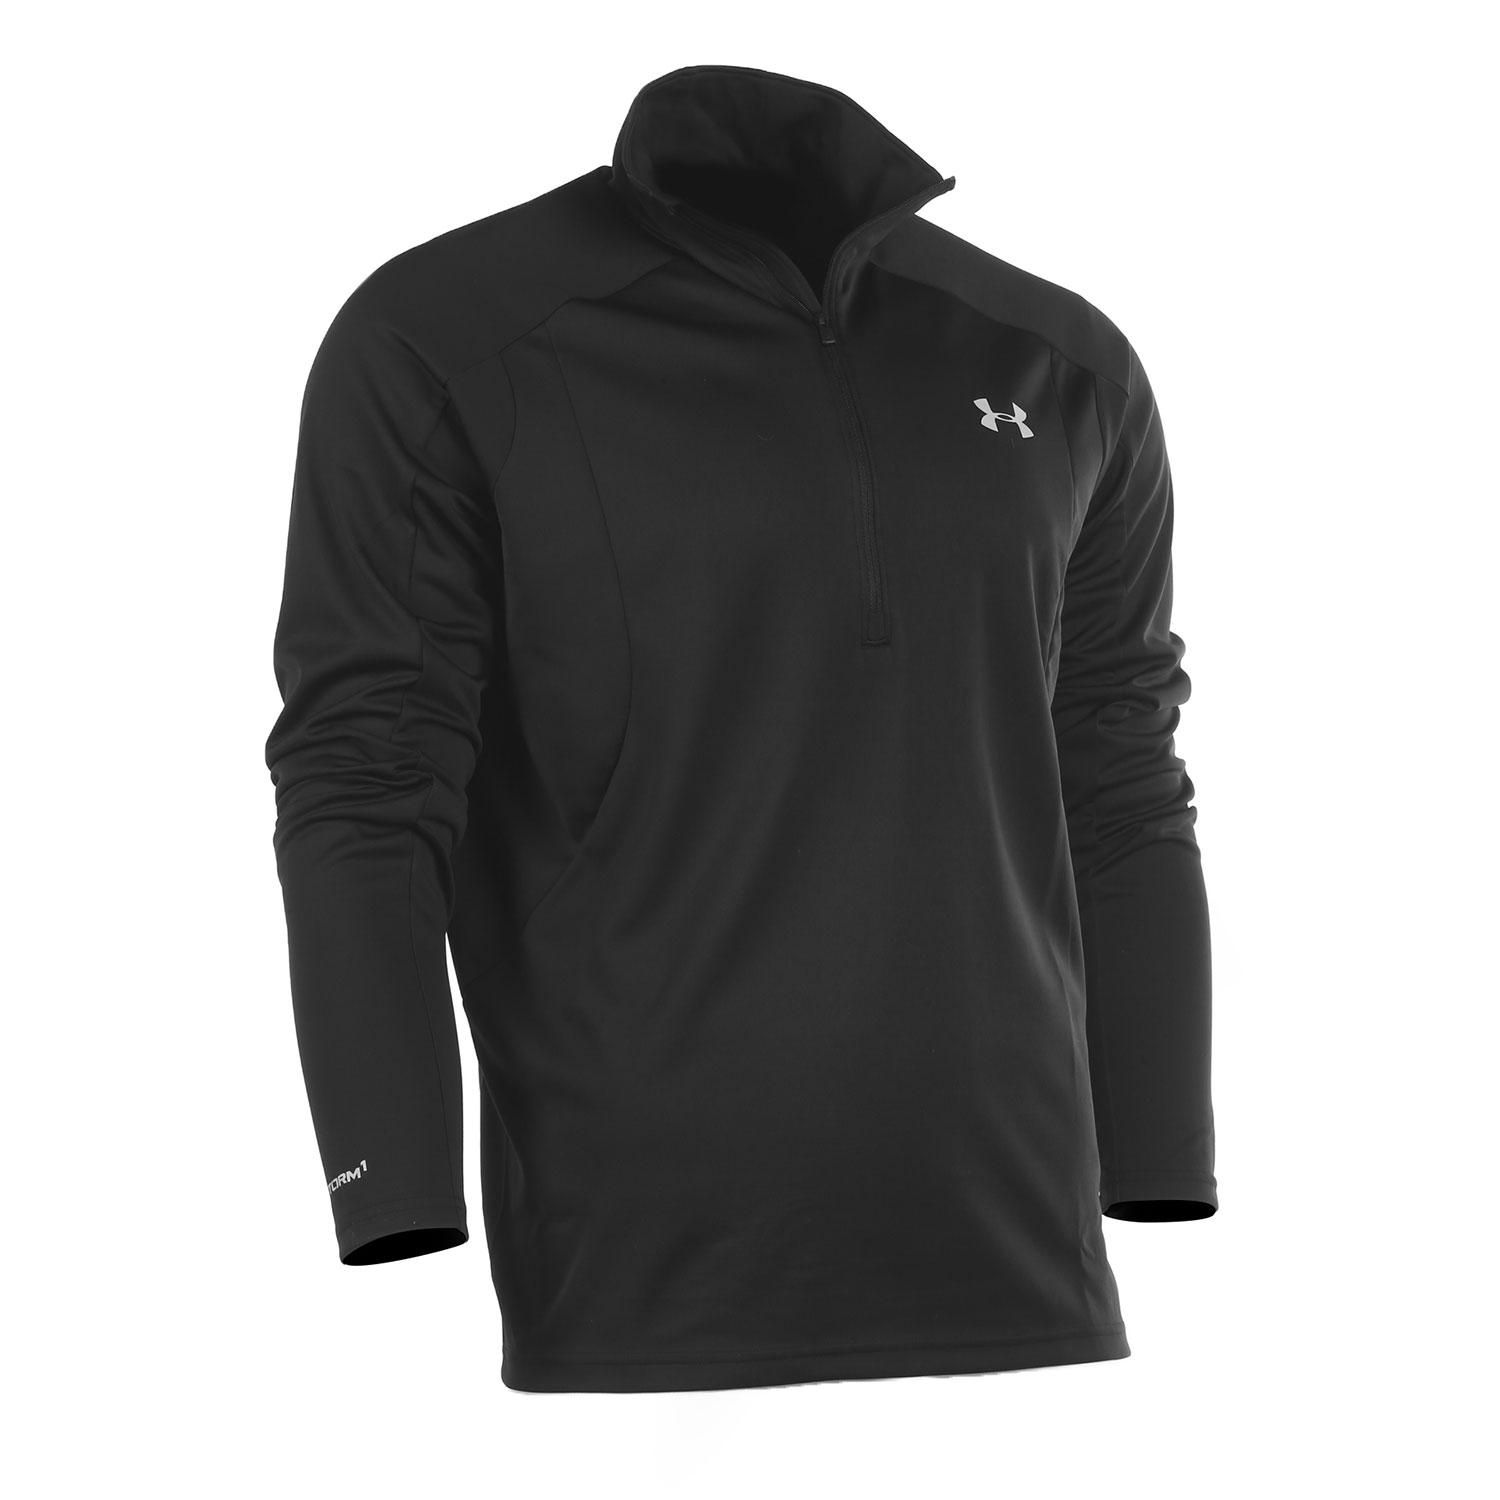 Under Armour WWP Women's UA Tech Freedom Half Zip